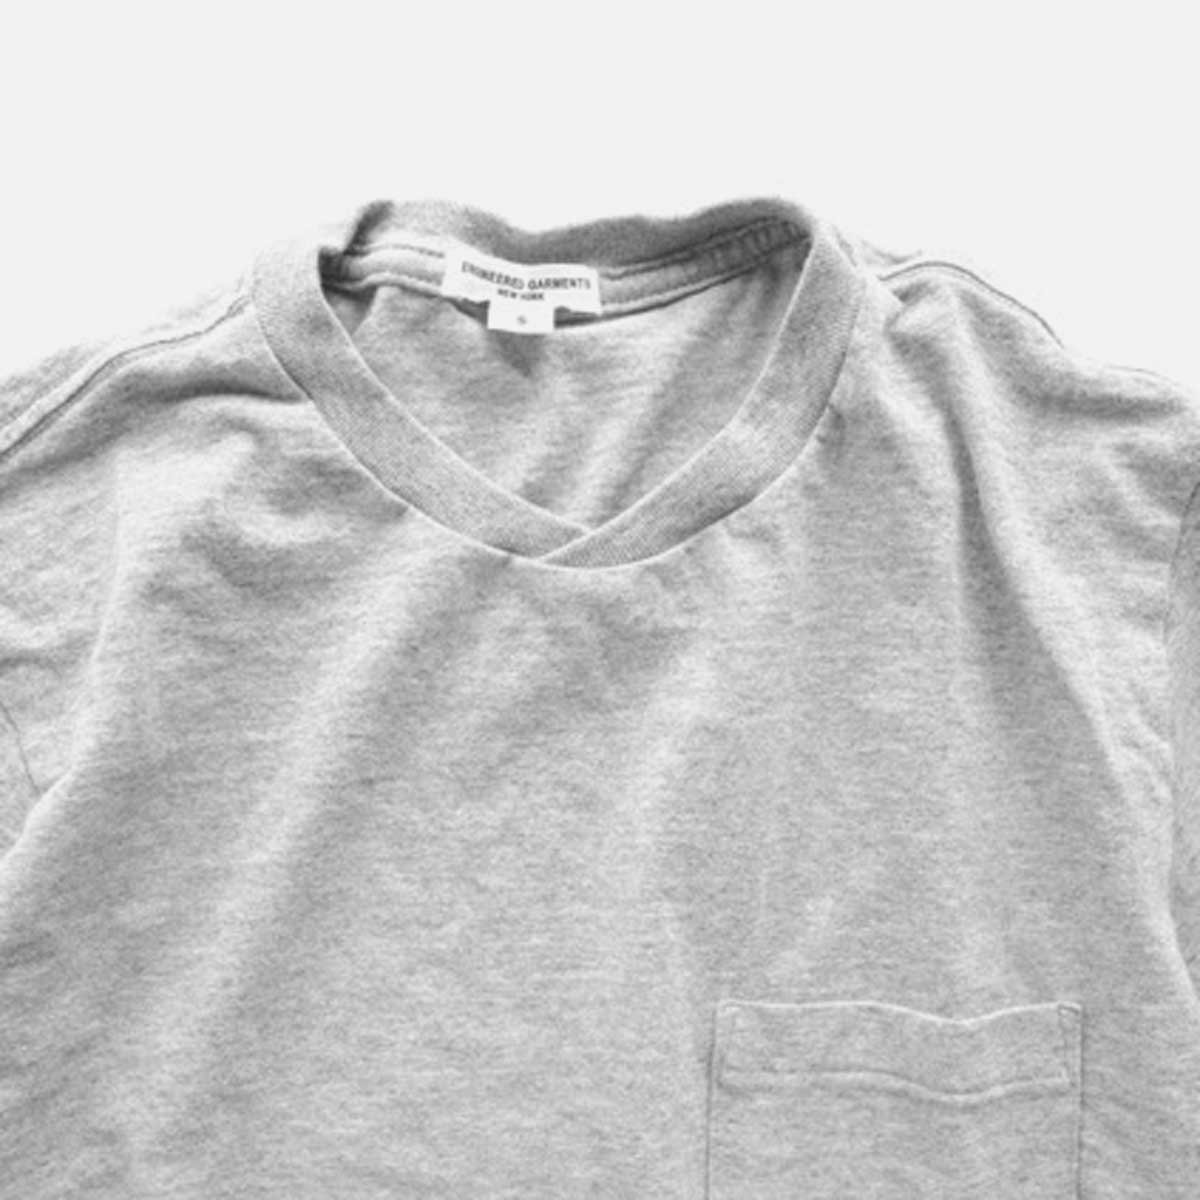 Engineered Garments  Workaday C/N Pocket Tee  (GREY)3